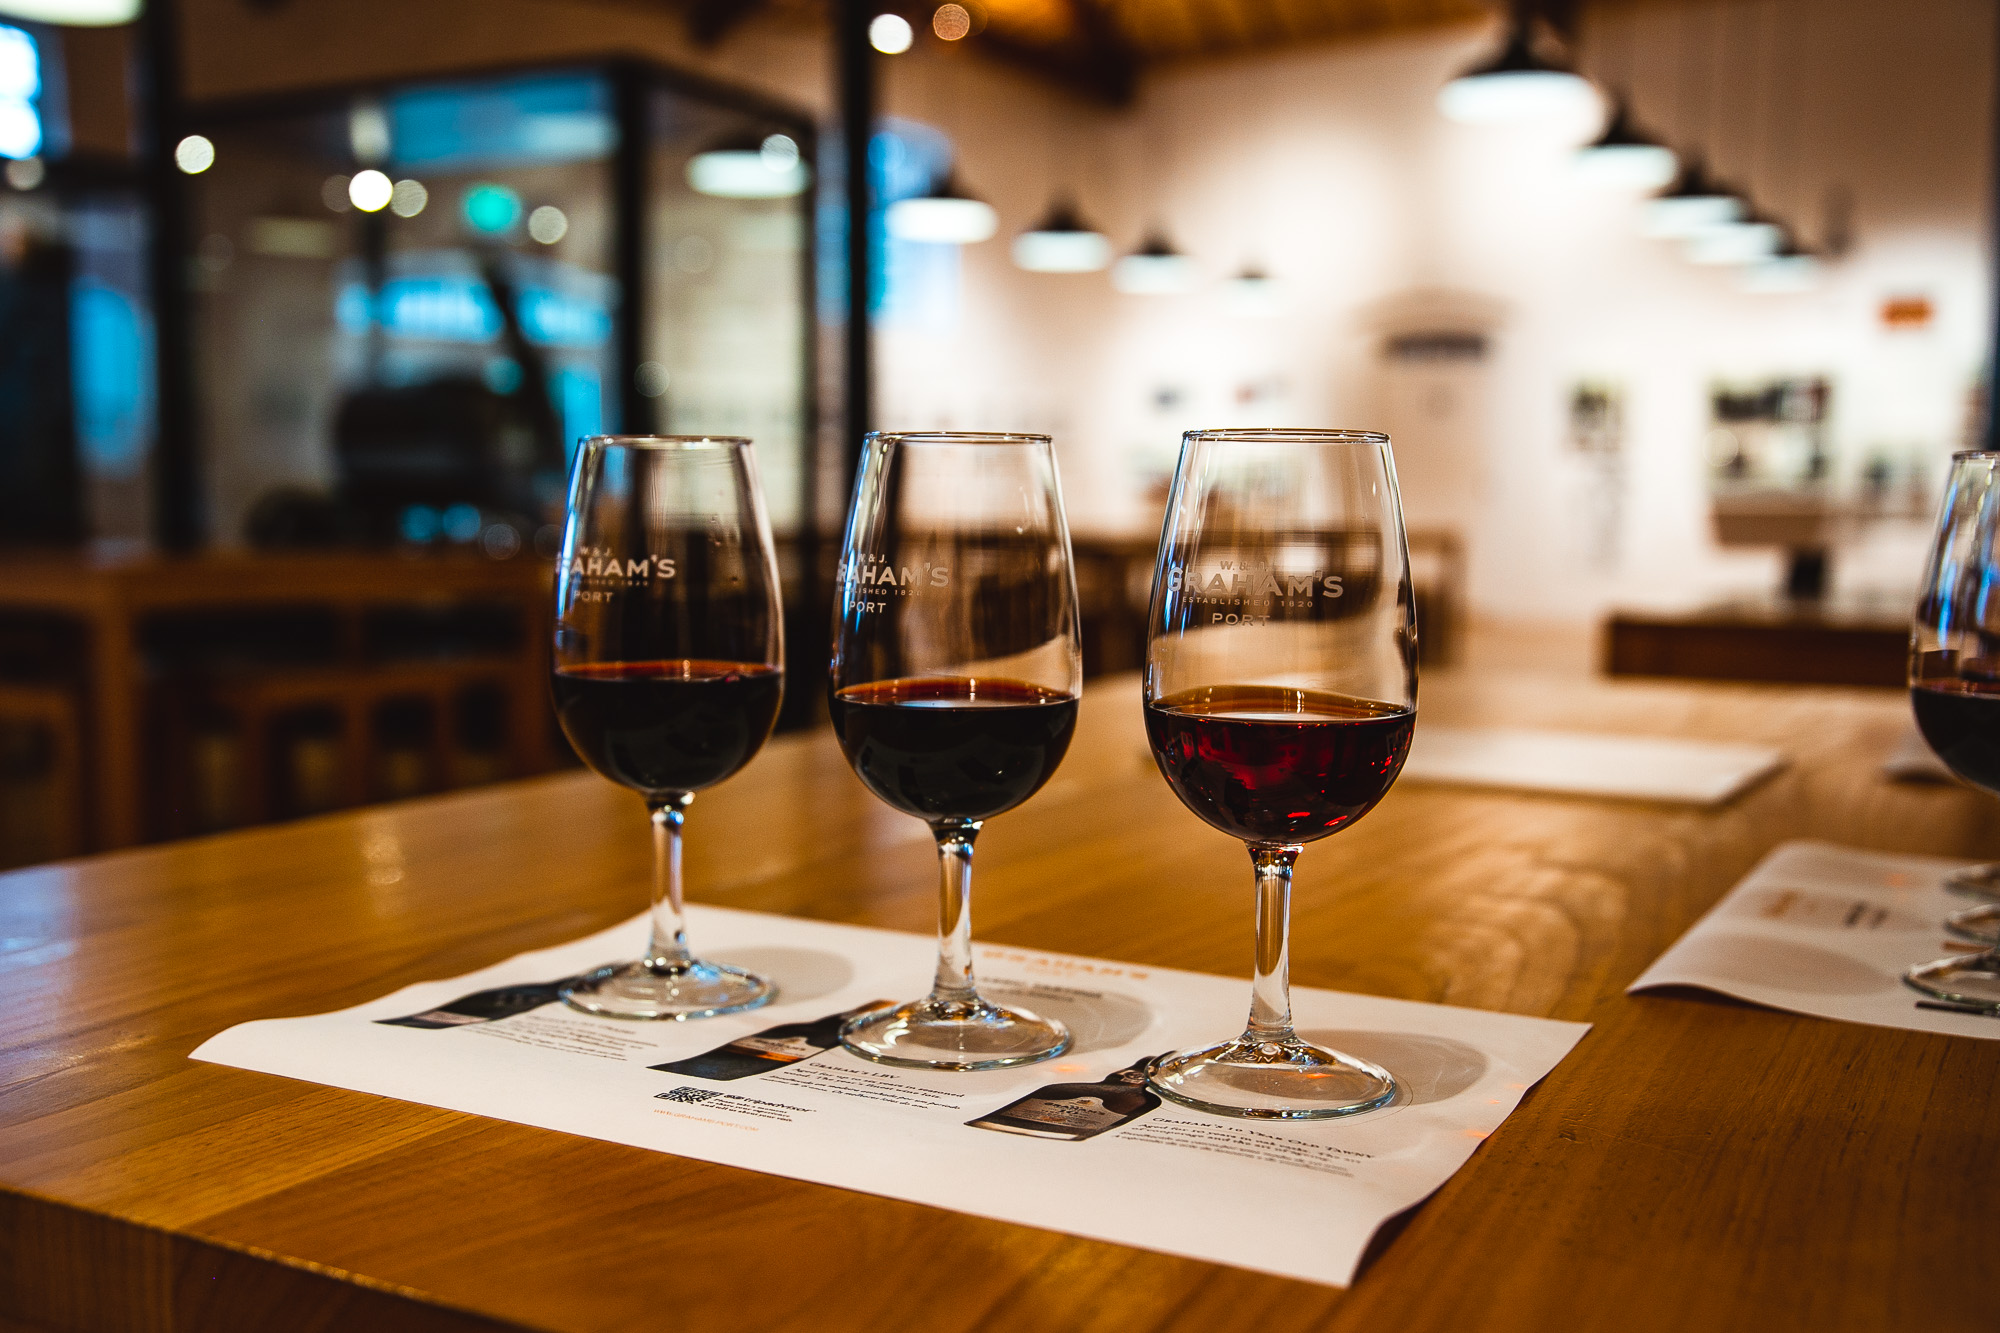 Port wine in Porto, Portugal - A one day Travel Guide on The Adagio Blog, by Thais FK